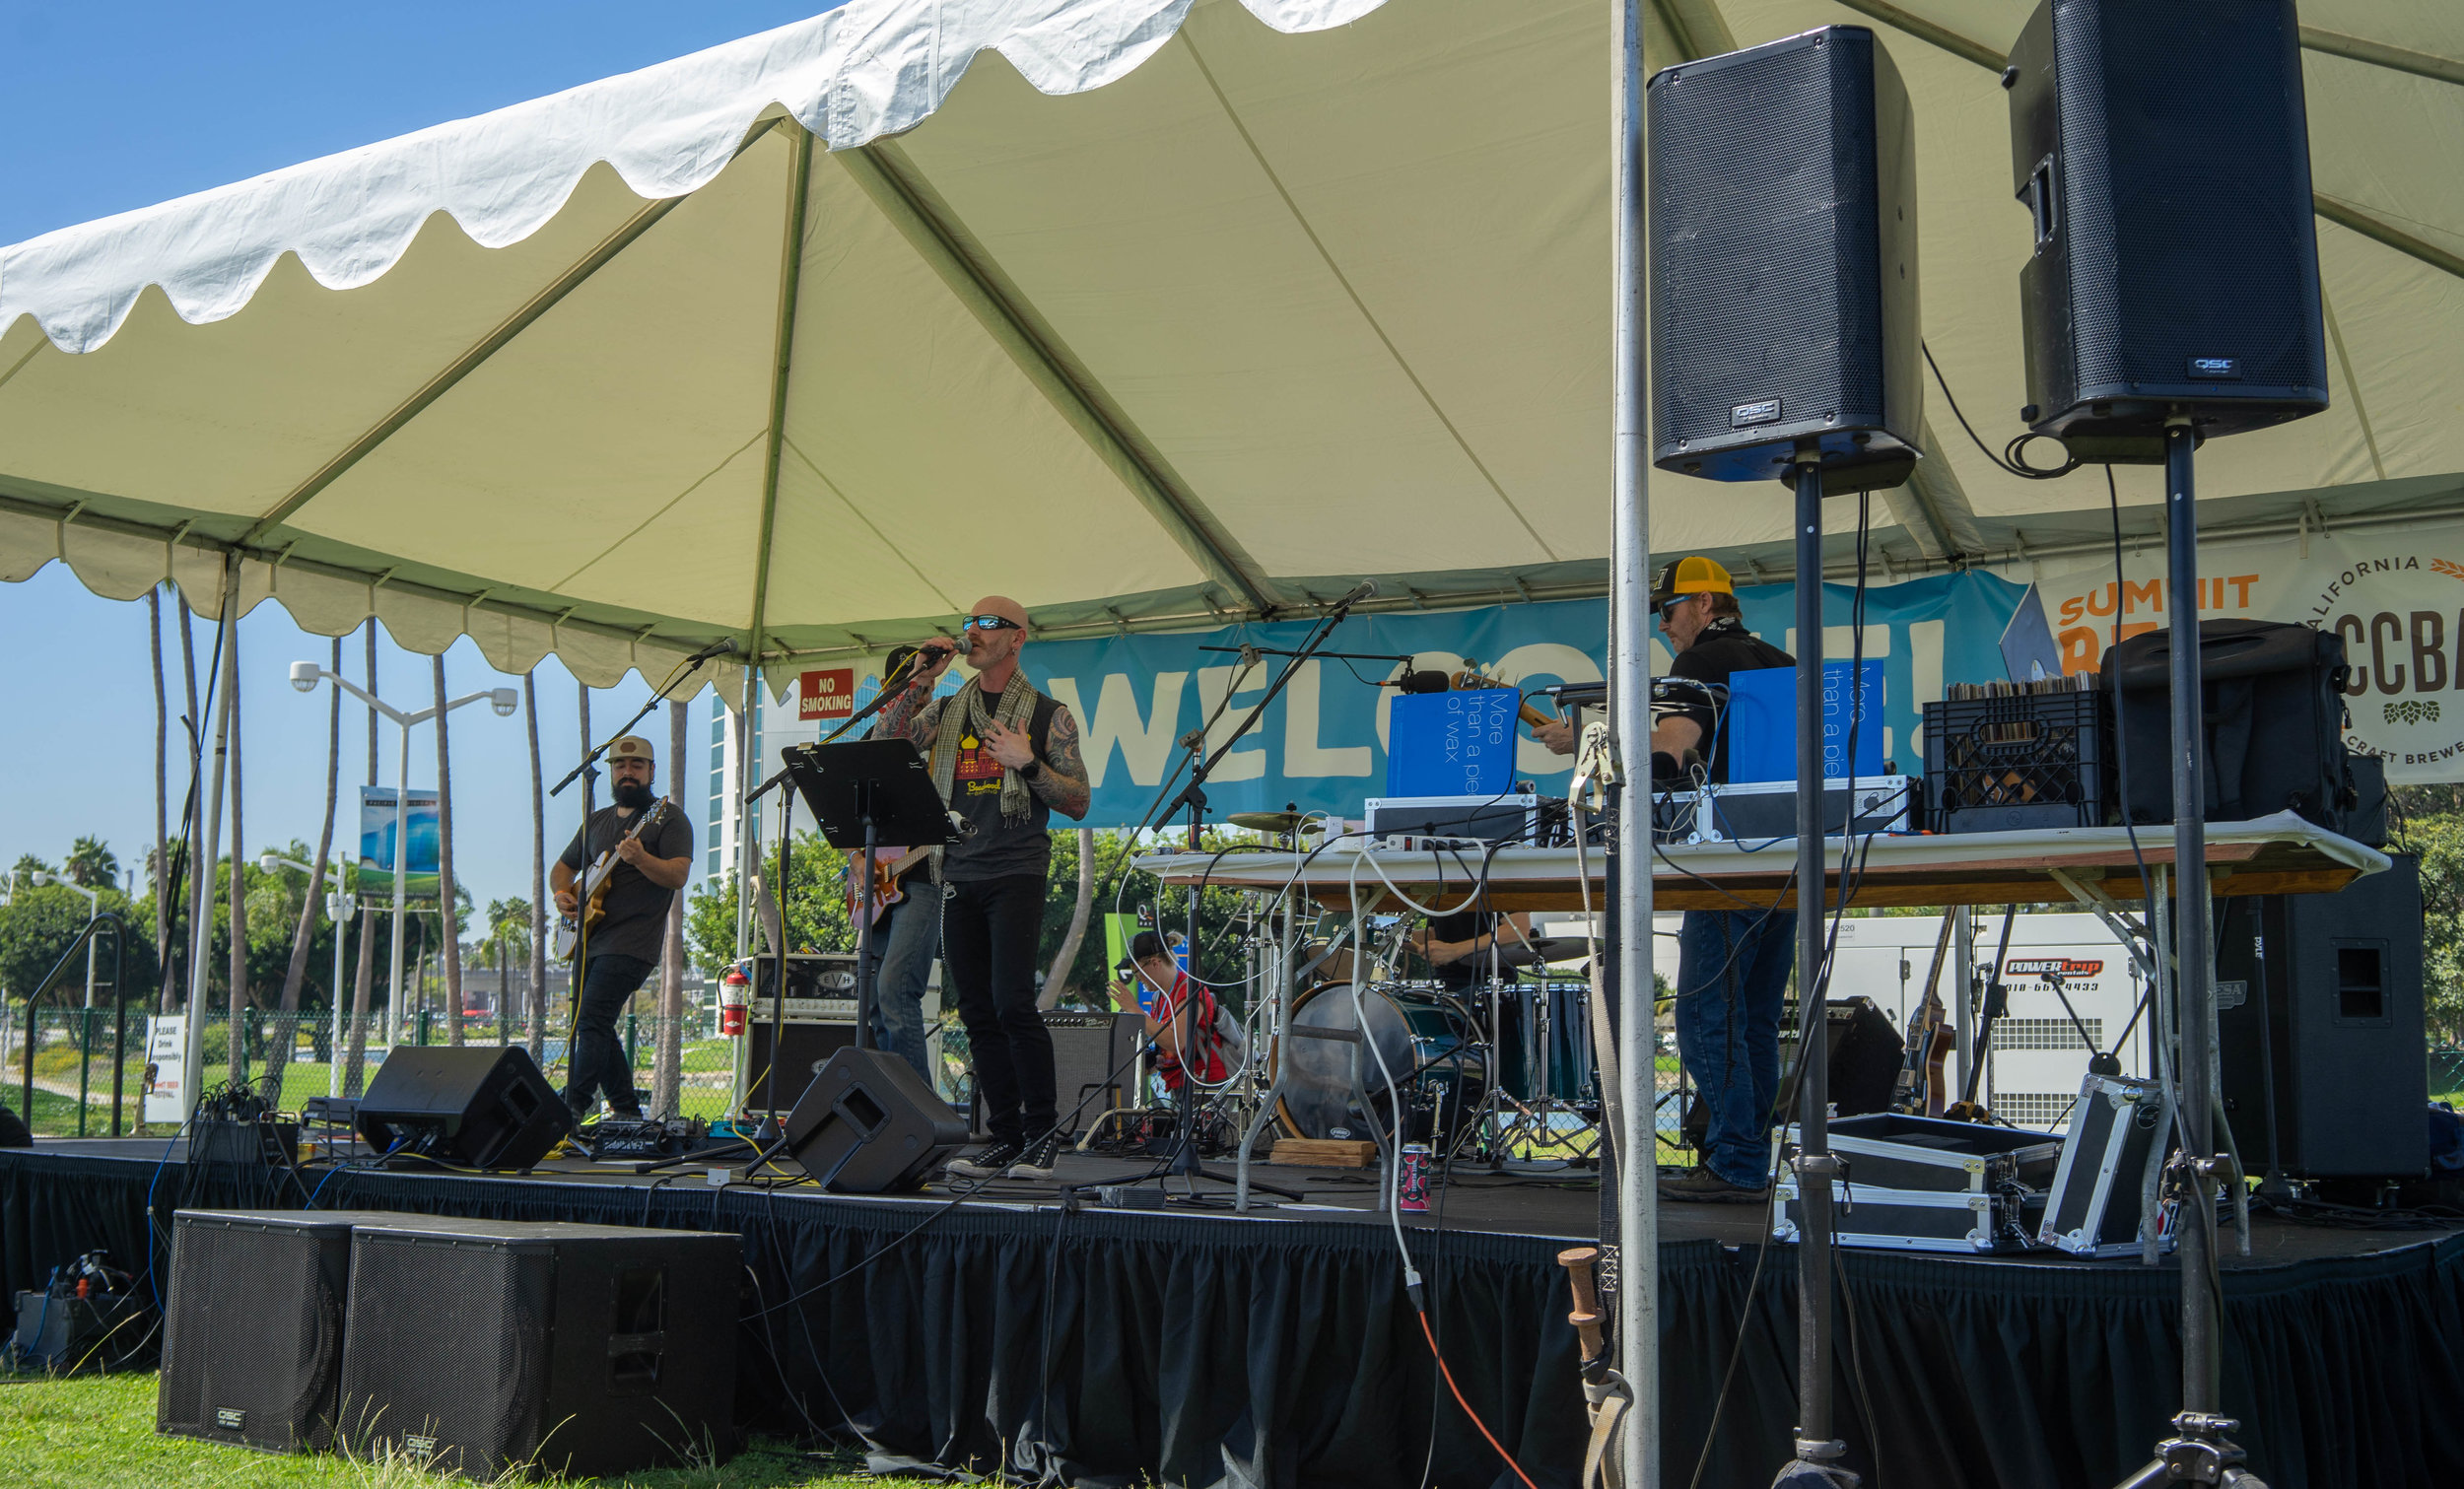 The festival was about more than just beer, with live music, food, and fun games scattered throughout the grounds.